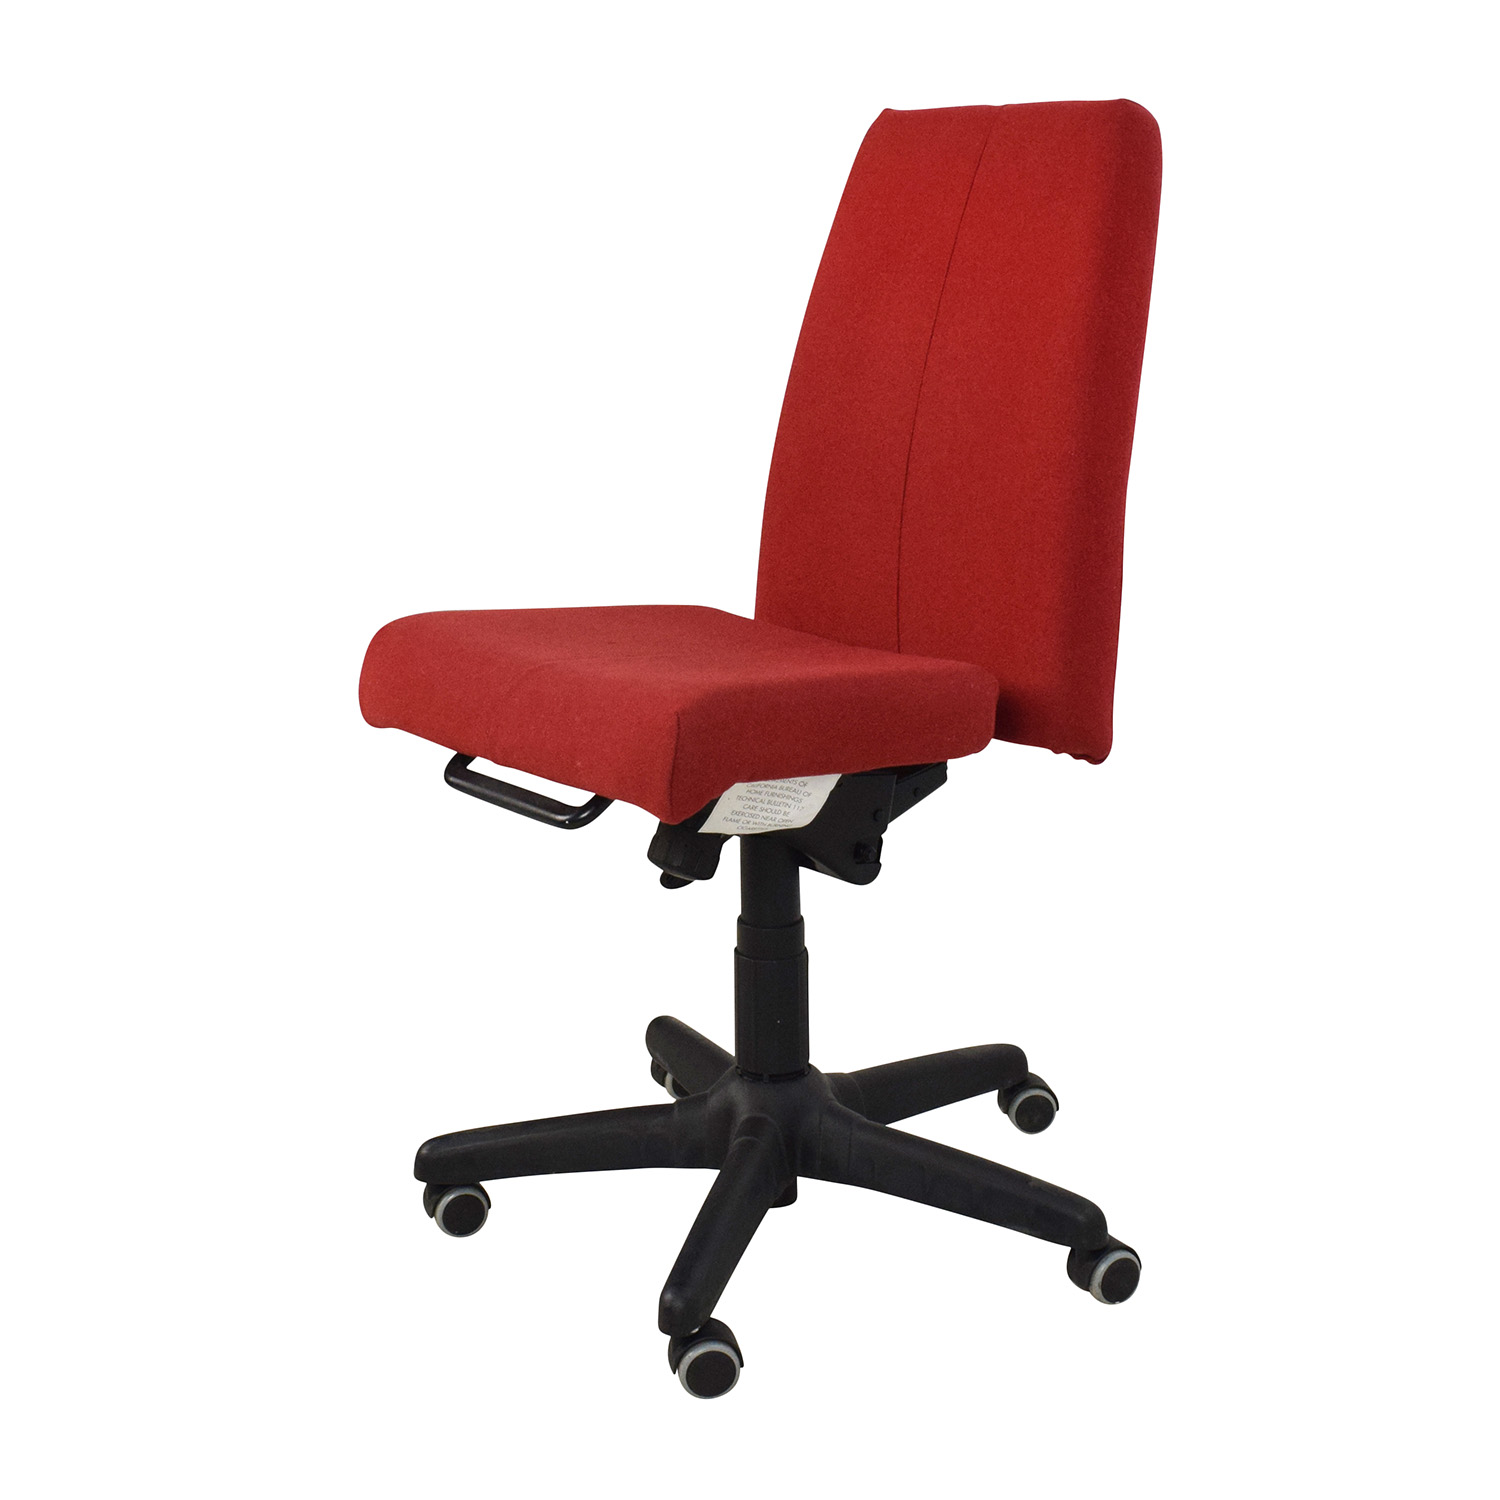 At Home Chairs 90 Off Red Armless Adjustable Home Office Chair Chairs